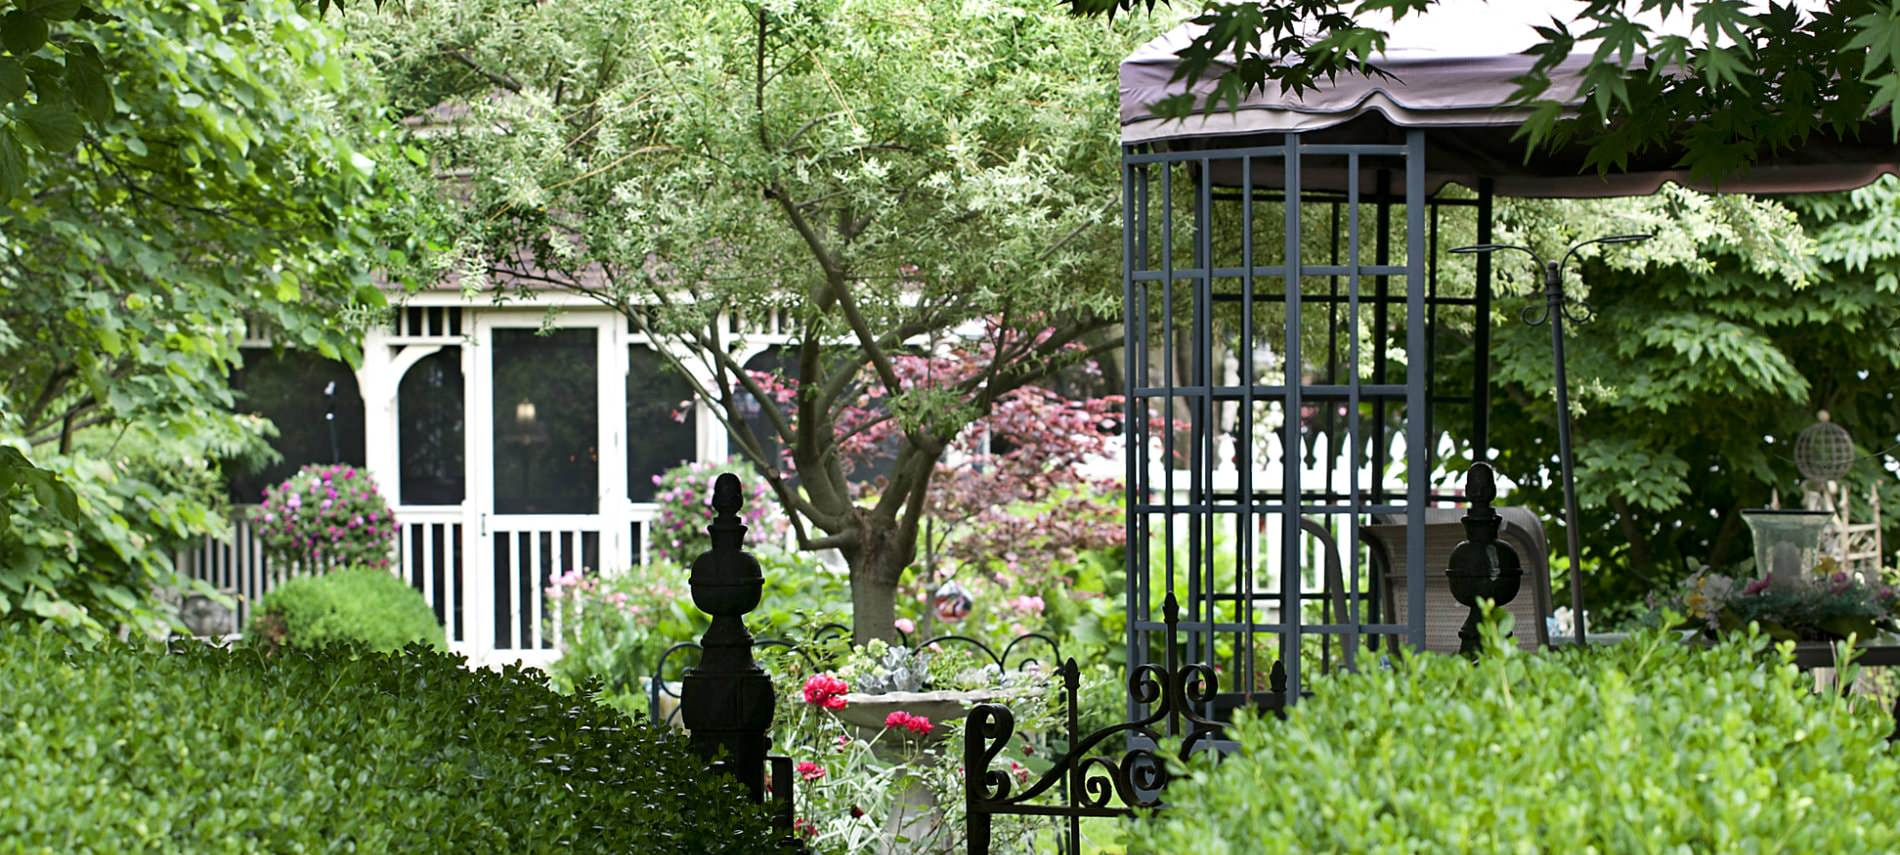 Exterior view of backyard with black fence and gate, white gazebo and lush green landscaping